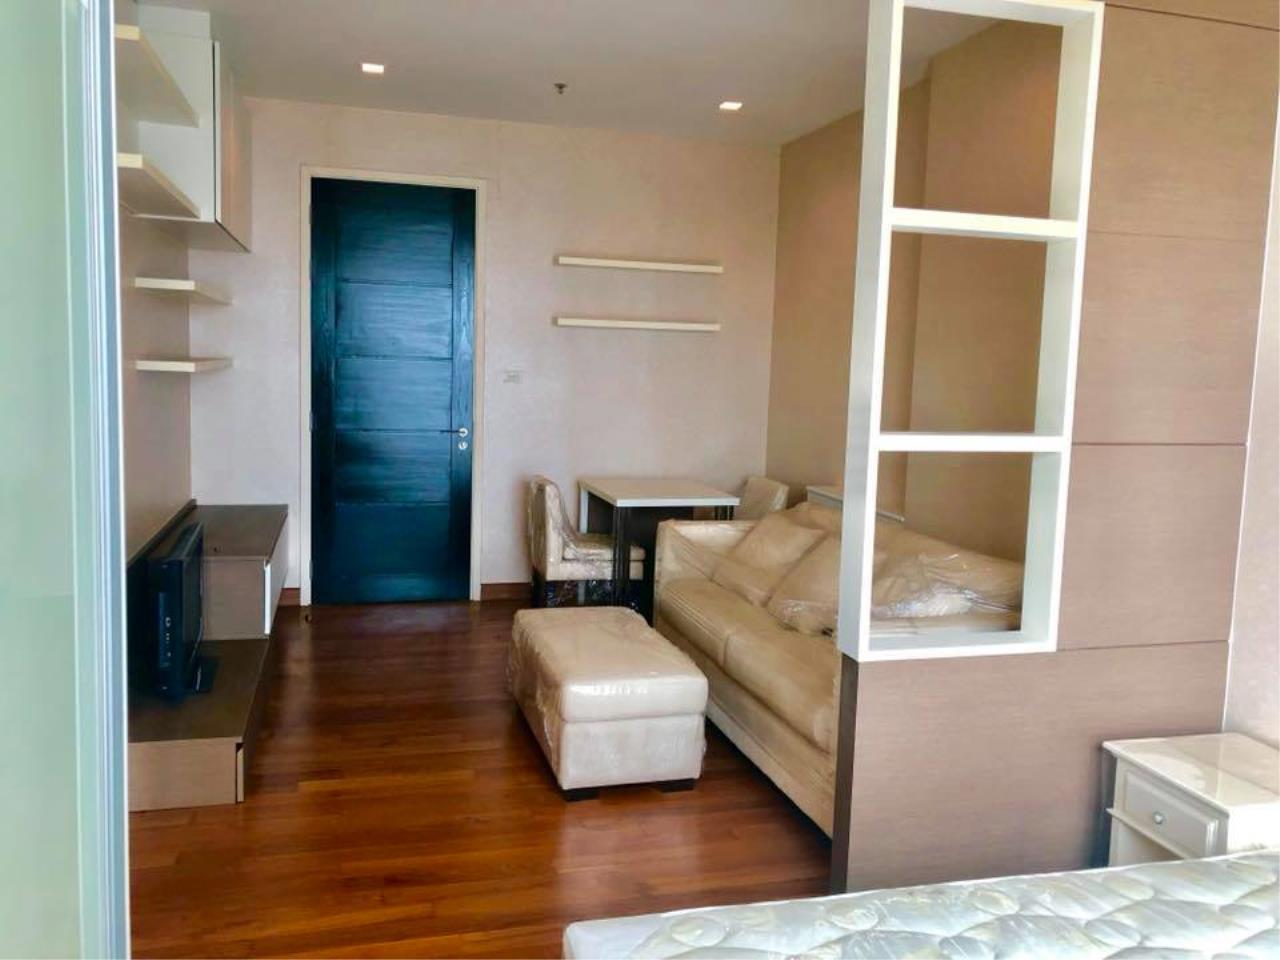 Quality Life Property Agency's S A L E !! || IVY SATHORN 10|| 1BR 33.64 Sq.m. NEW UNIT!! 7